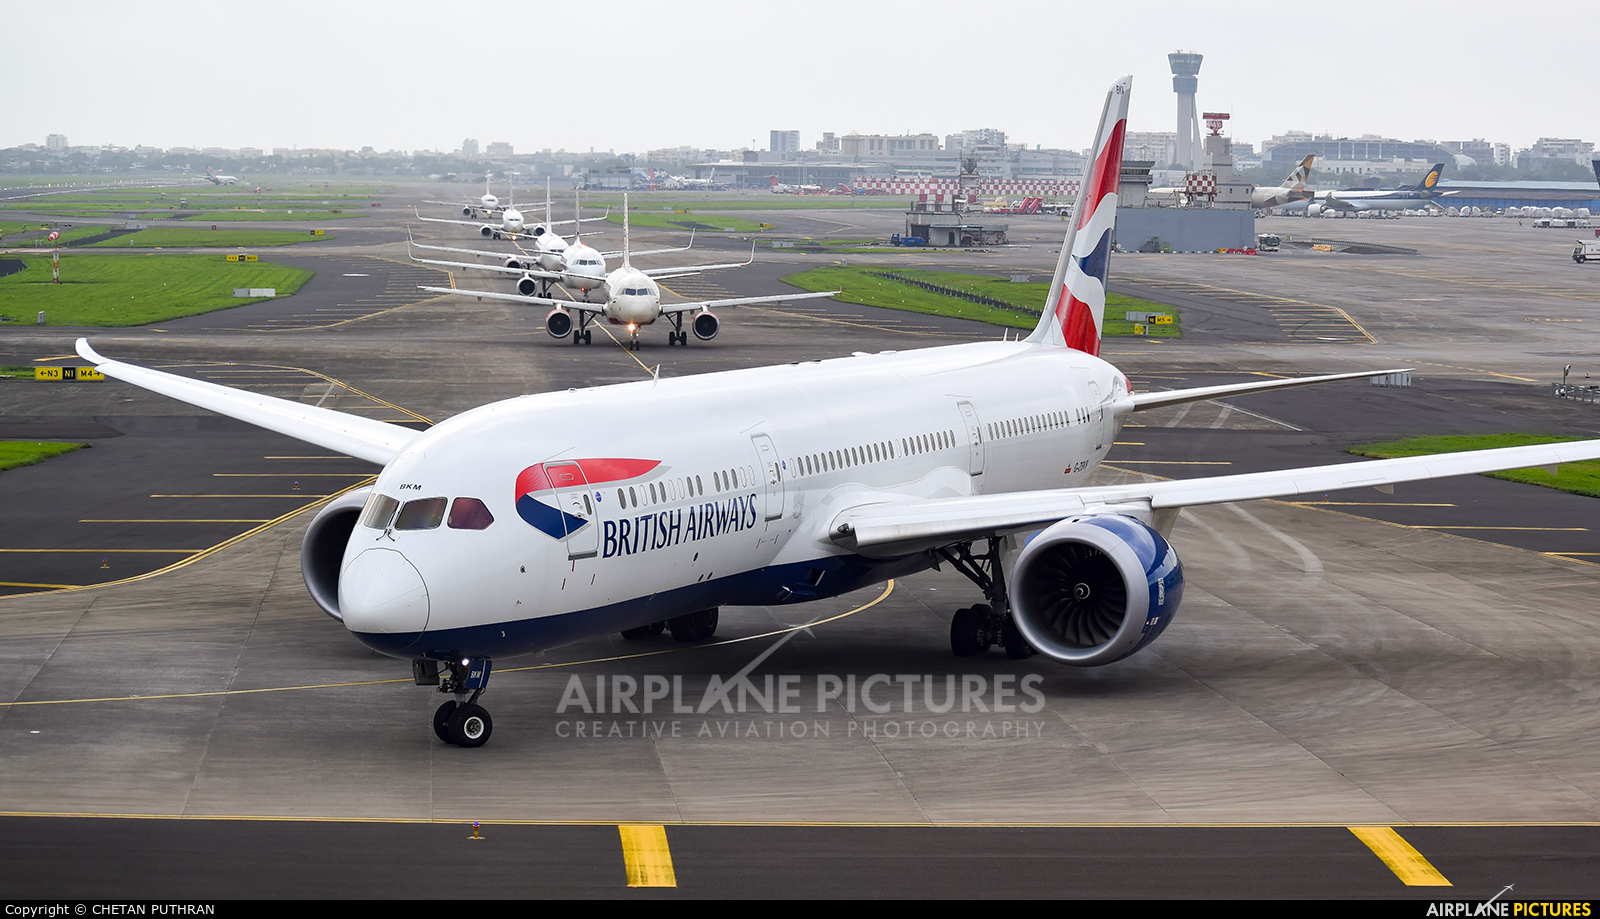 British Airways G-ZBKM aircraft at Mumbai - Chhatrapati Shivaji Intl